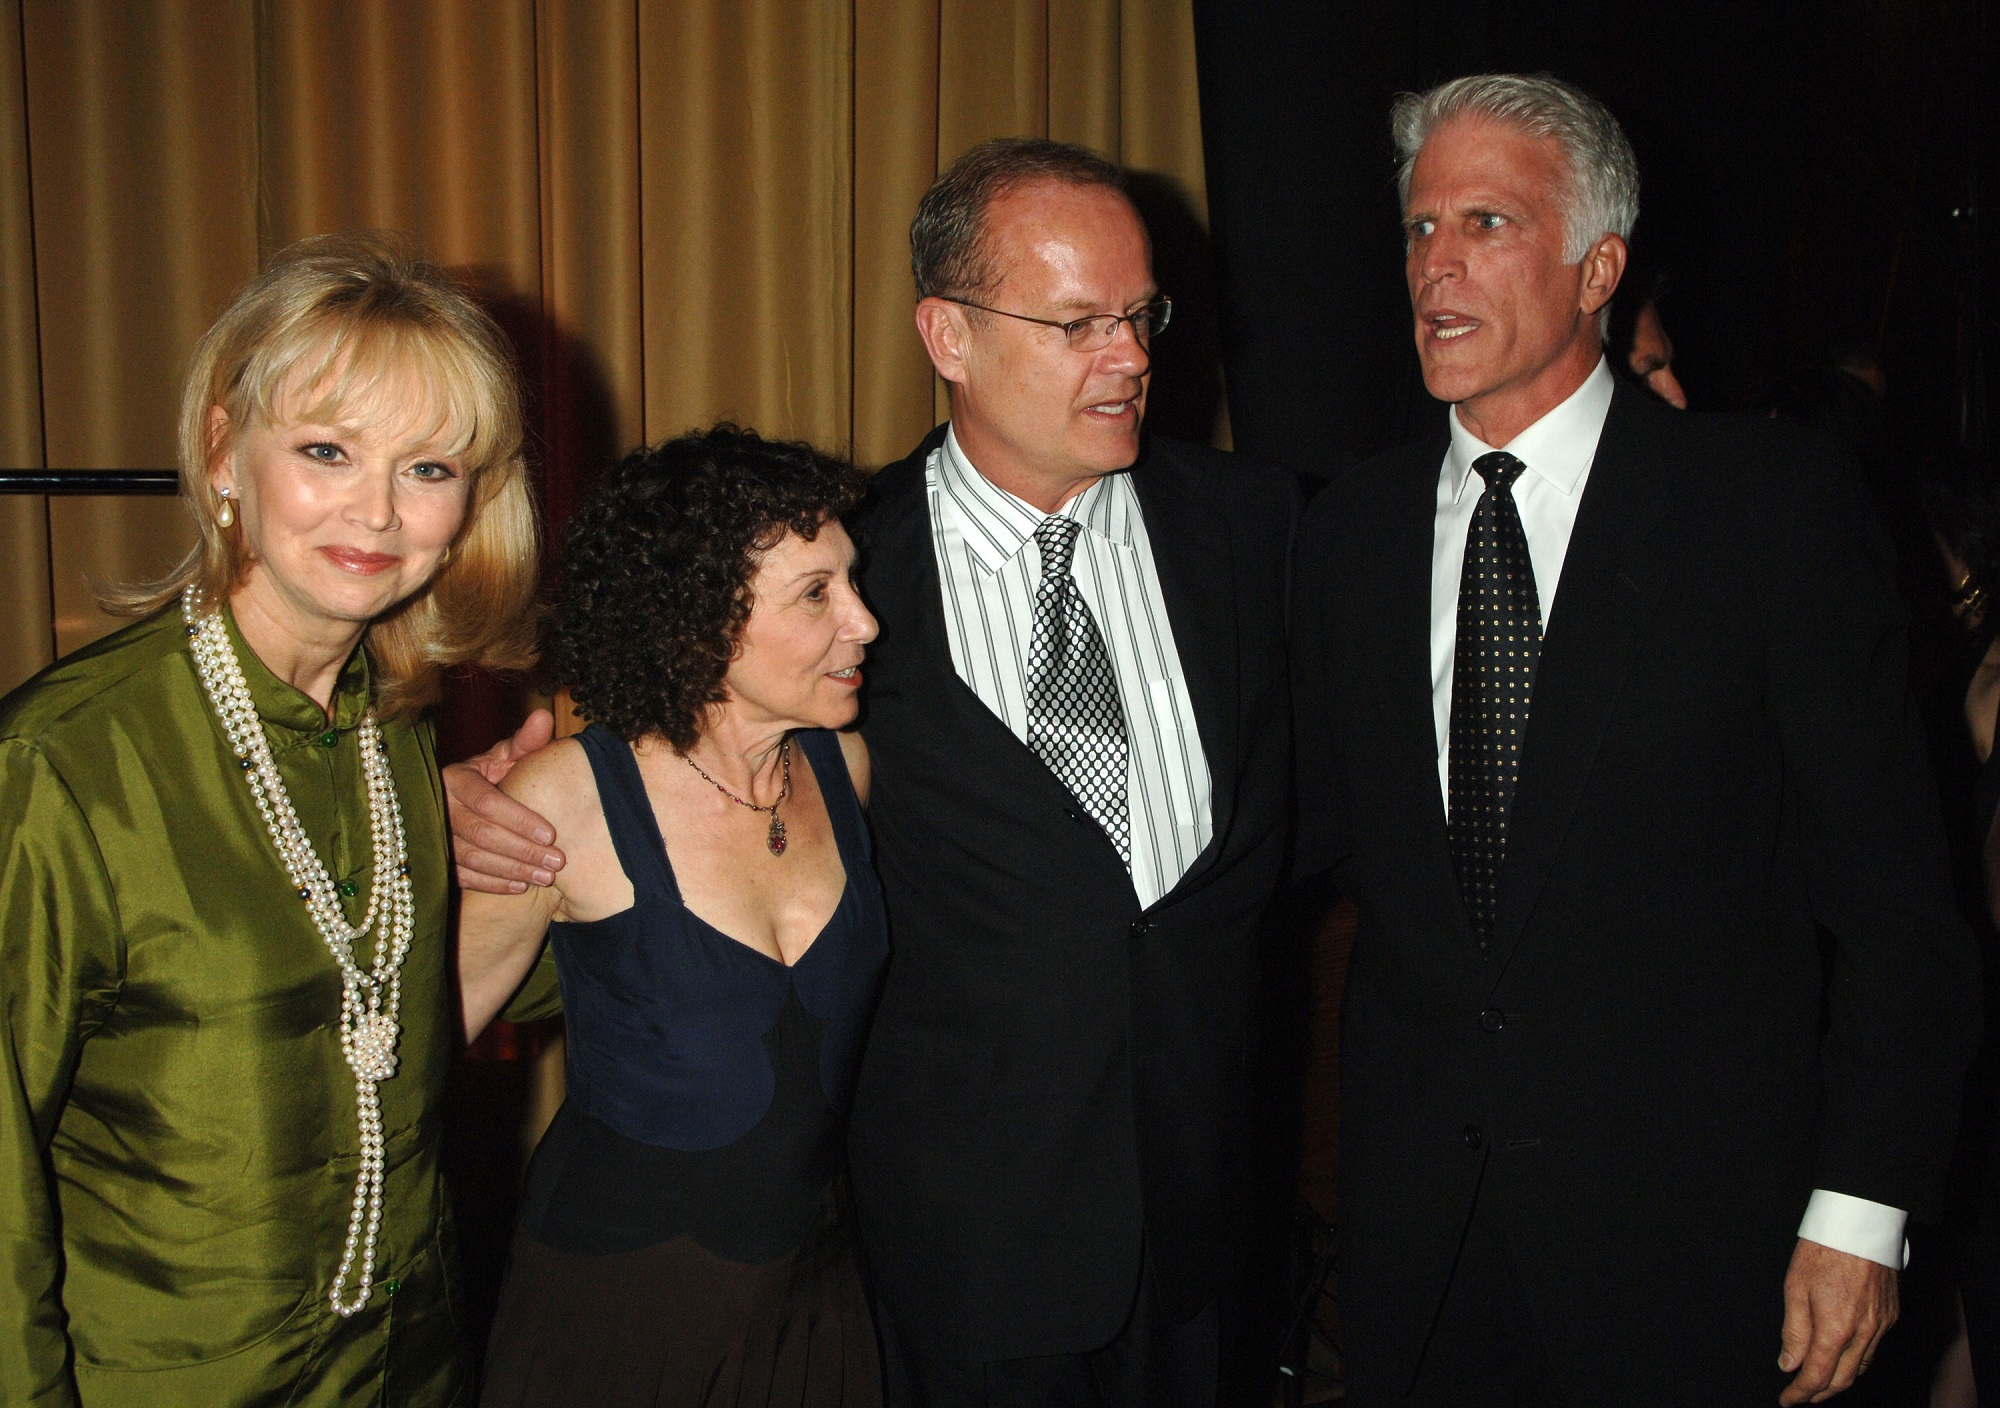 Shelley Long, Rhea Perlman, Kelsey Grammer. and Ted Danson of Cheers